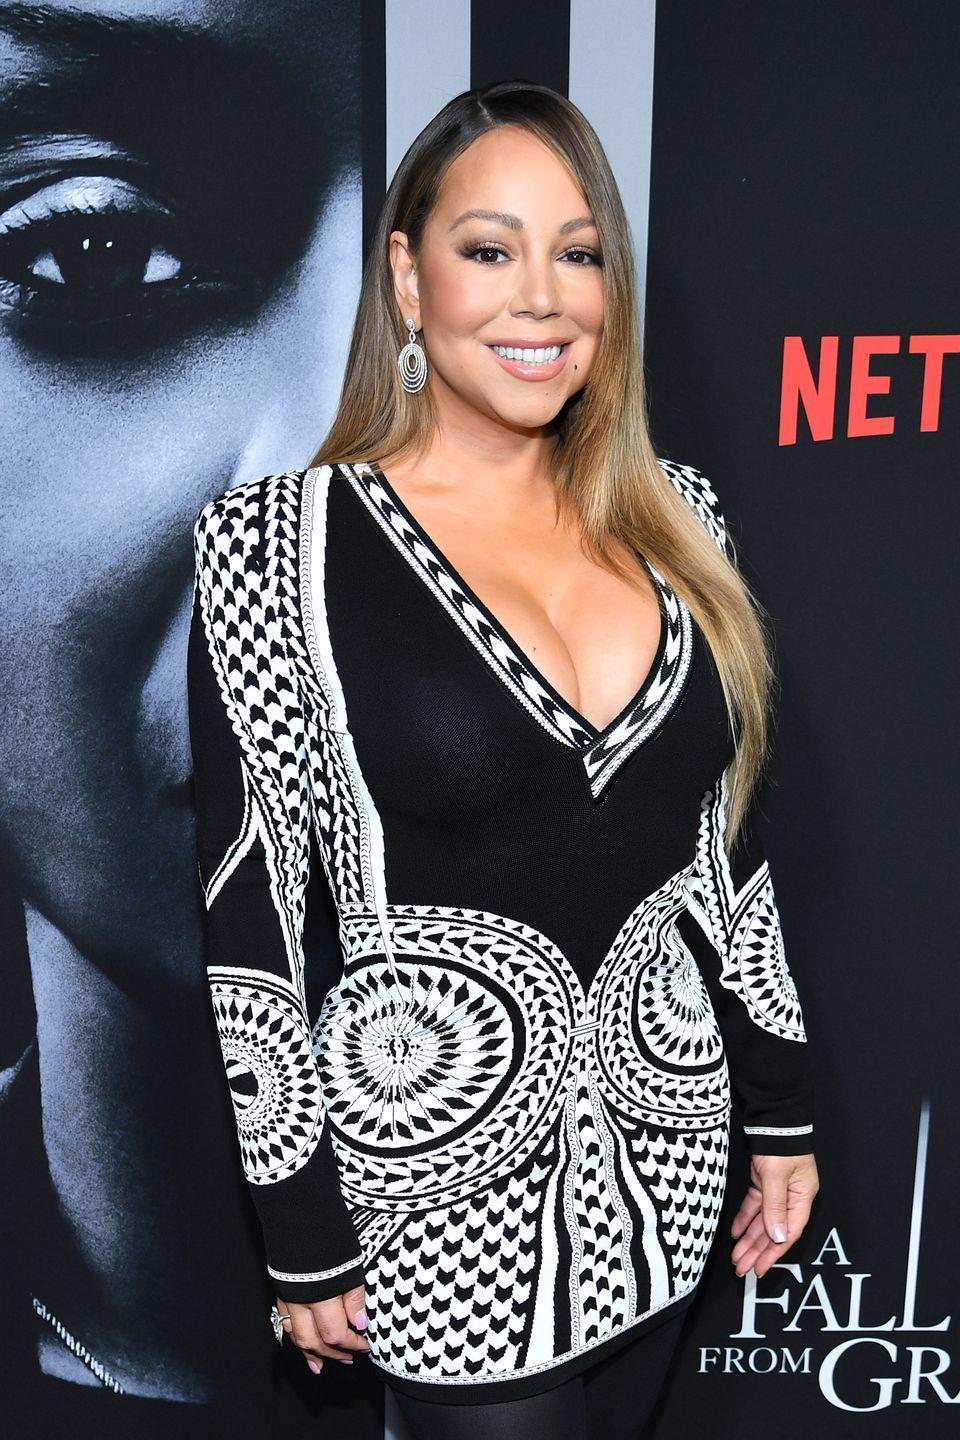 """<p>The musical icon's mother is Irish, while her father was Black and Venezuelan. </p><p>""""[My grandfather]'s last name was Nuñez,"""" <a href=""""https://www.yahoo.com/entertainment/mariah-carey-discusses-her-latino-190000282.html"""" data-ylk=""""slk:she once said;outcm:mb_qualified_link;_E:mb_qualified_link;ct:story;"""" class=""""link rapid-noclick-resp yahoo-link"""">she once said</a> in an interview. """"My grandfather made up the name 'Carey,' when he came to America to be more accepted, I guess. But that was funny, because that's an Irish name and Irish people were discriminated against at that time too."""" </p>"""